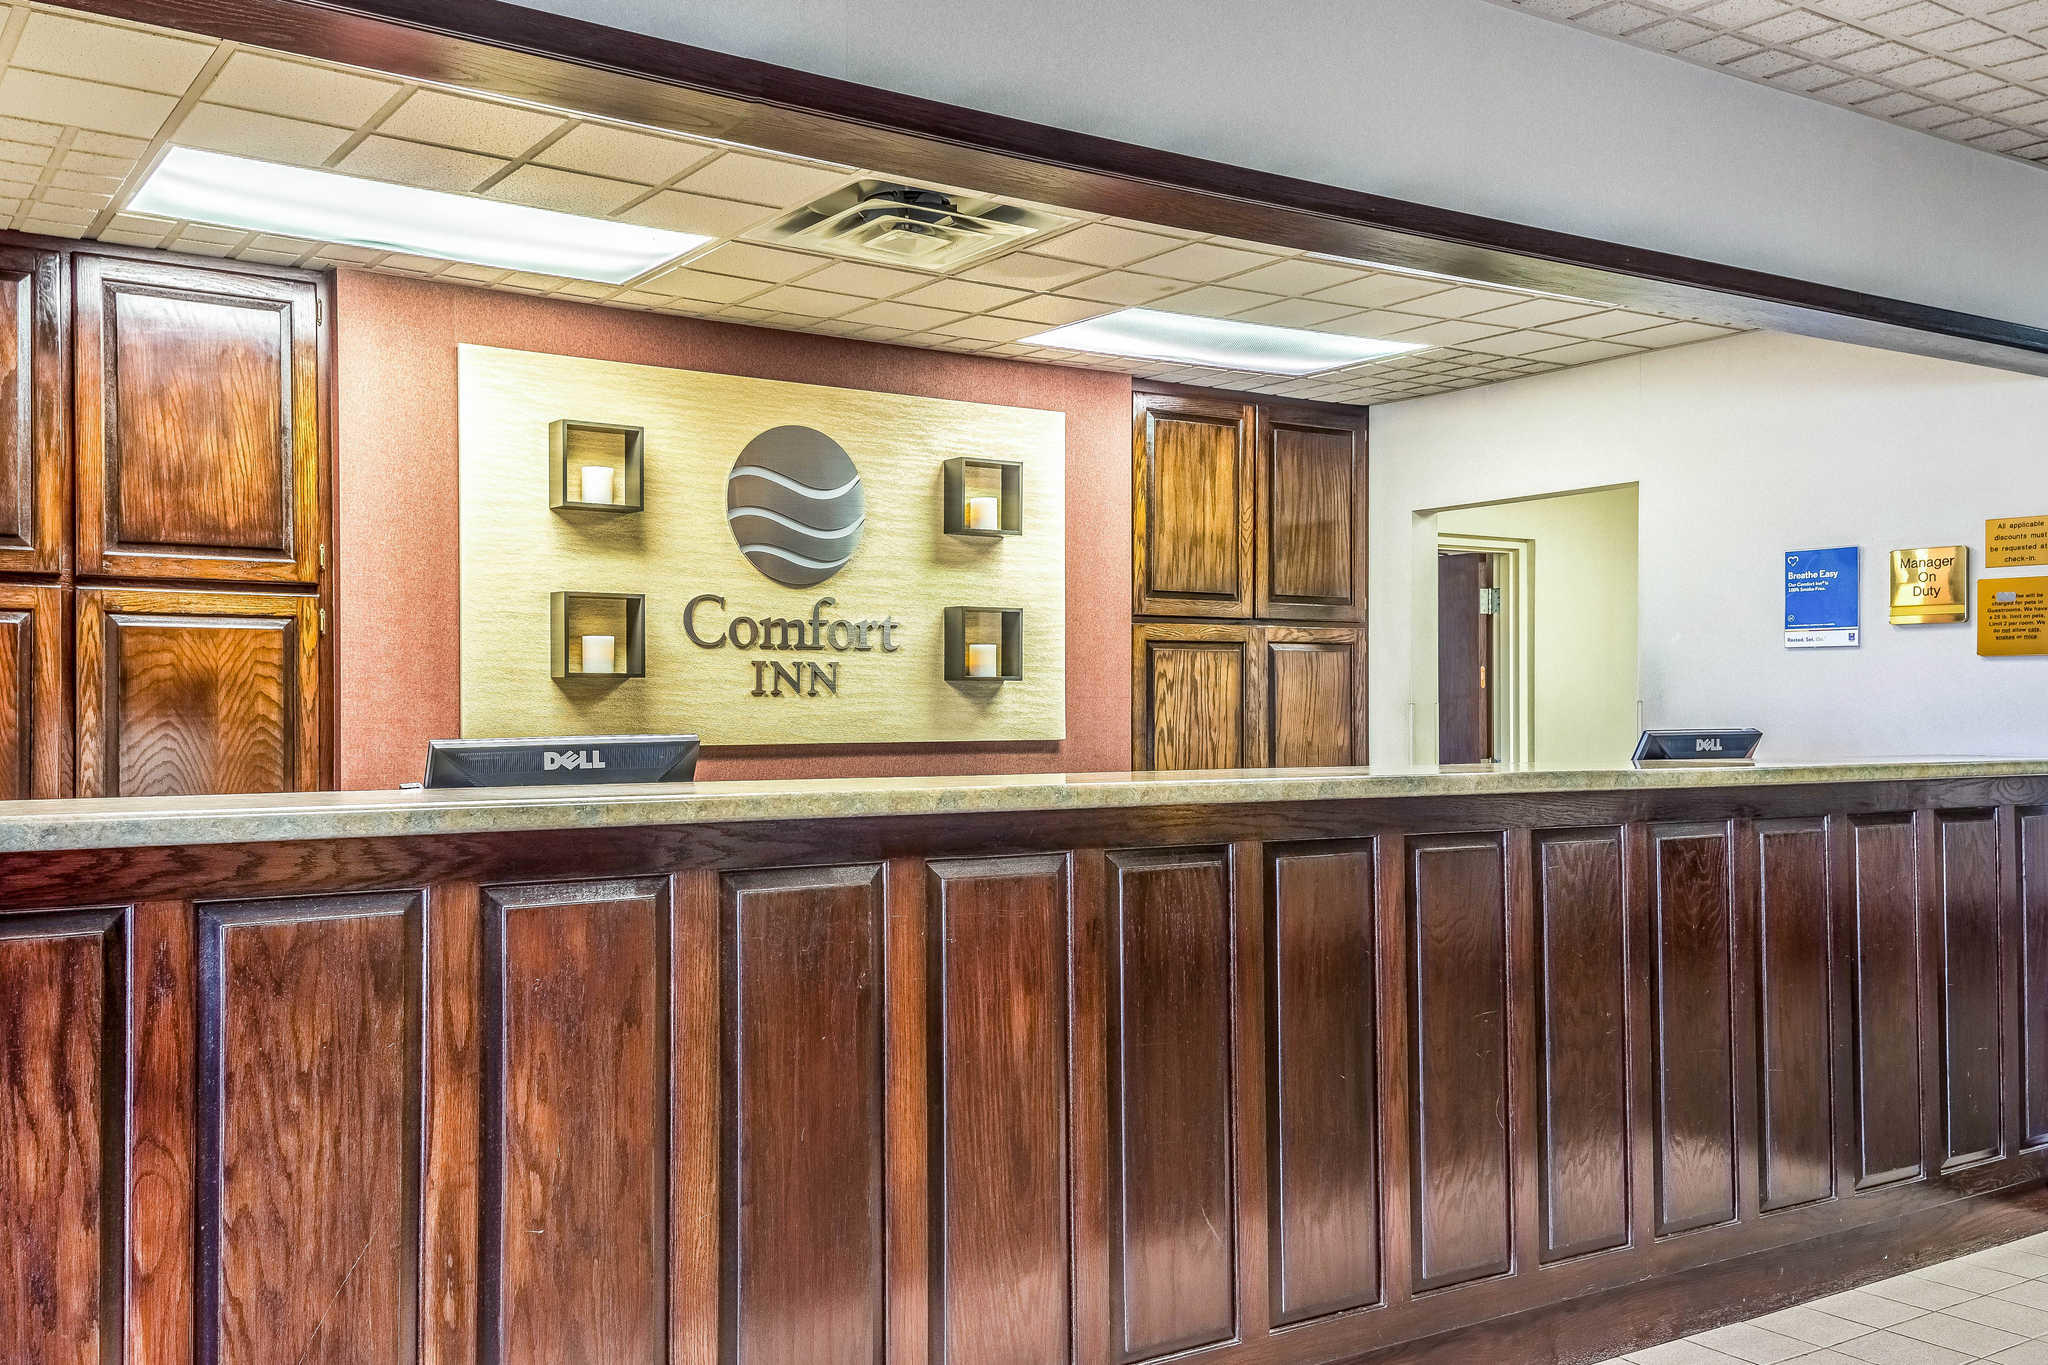 Comfort inn coupons mountain home ar near me 8coupons for Mountain house coupon